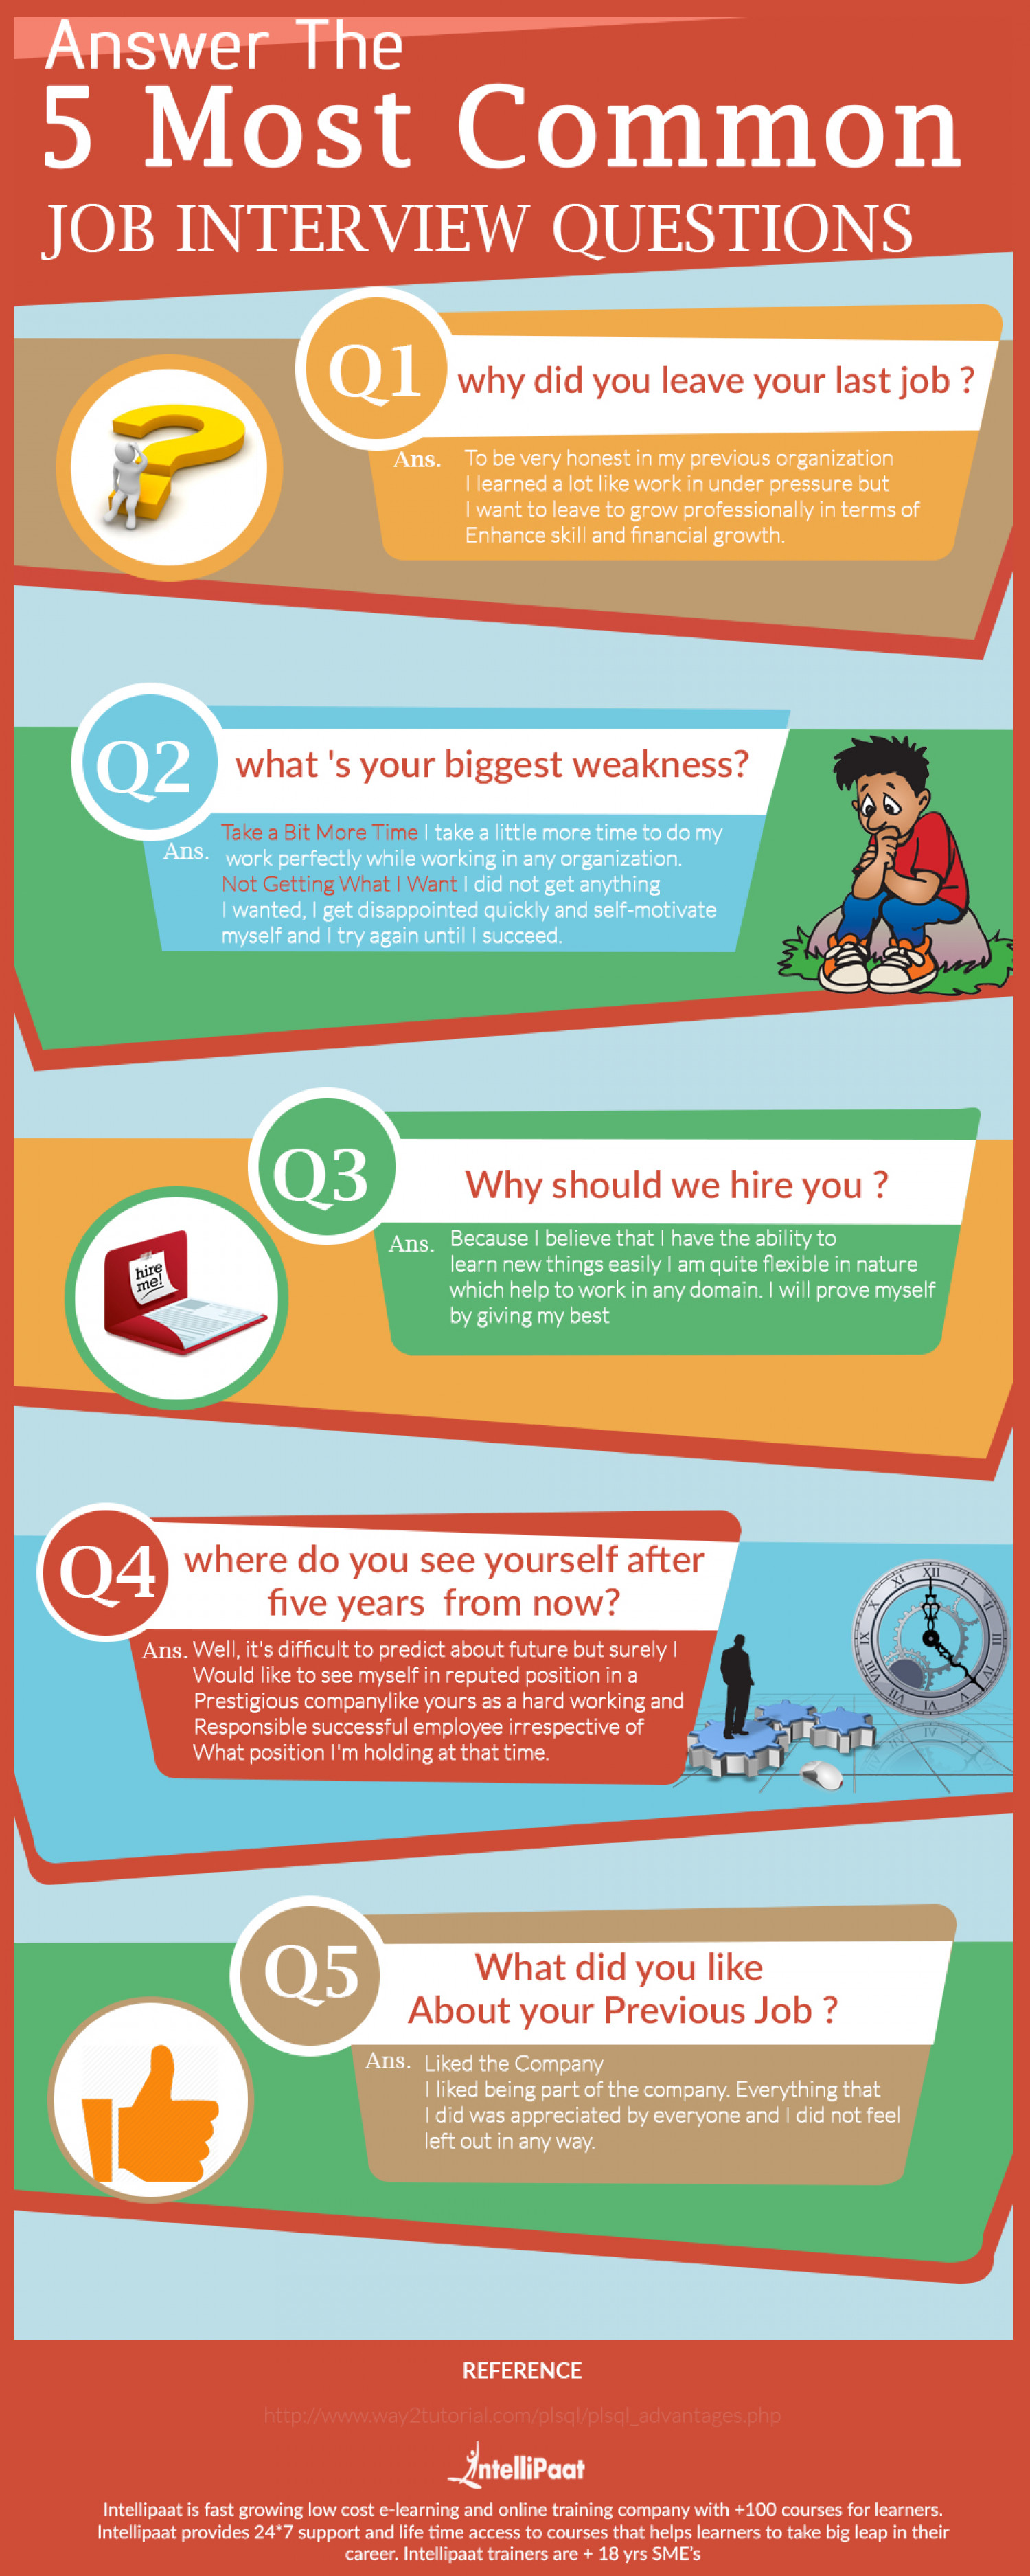 answer the most common job interview questions ly answer the 5 most common job interview questions infographic